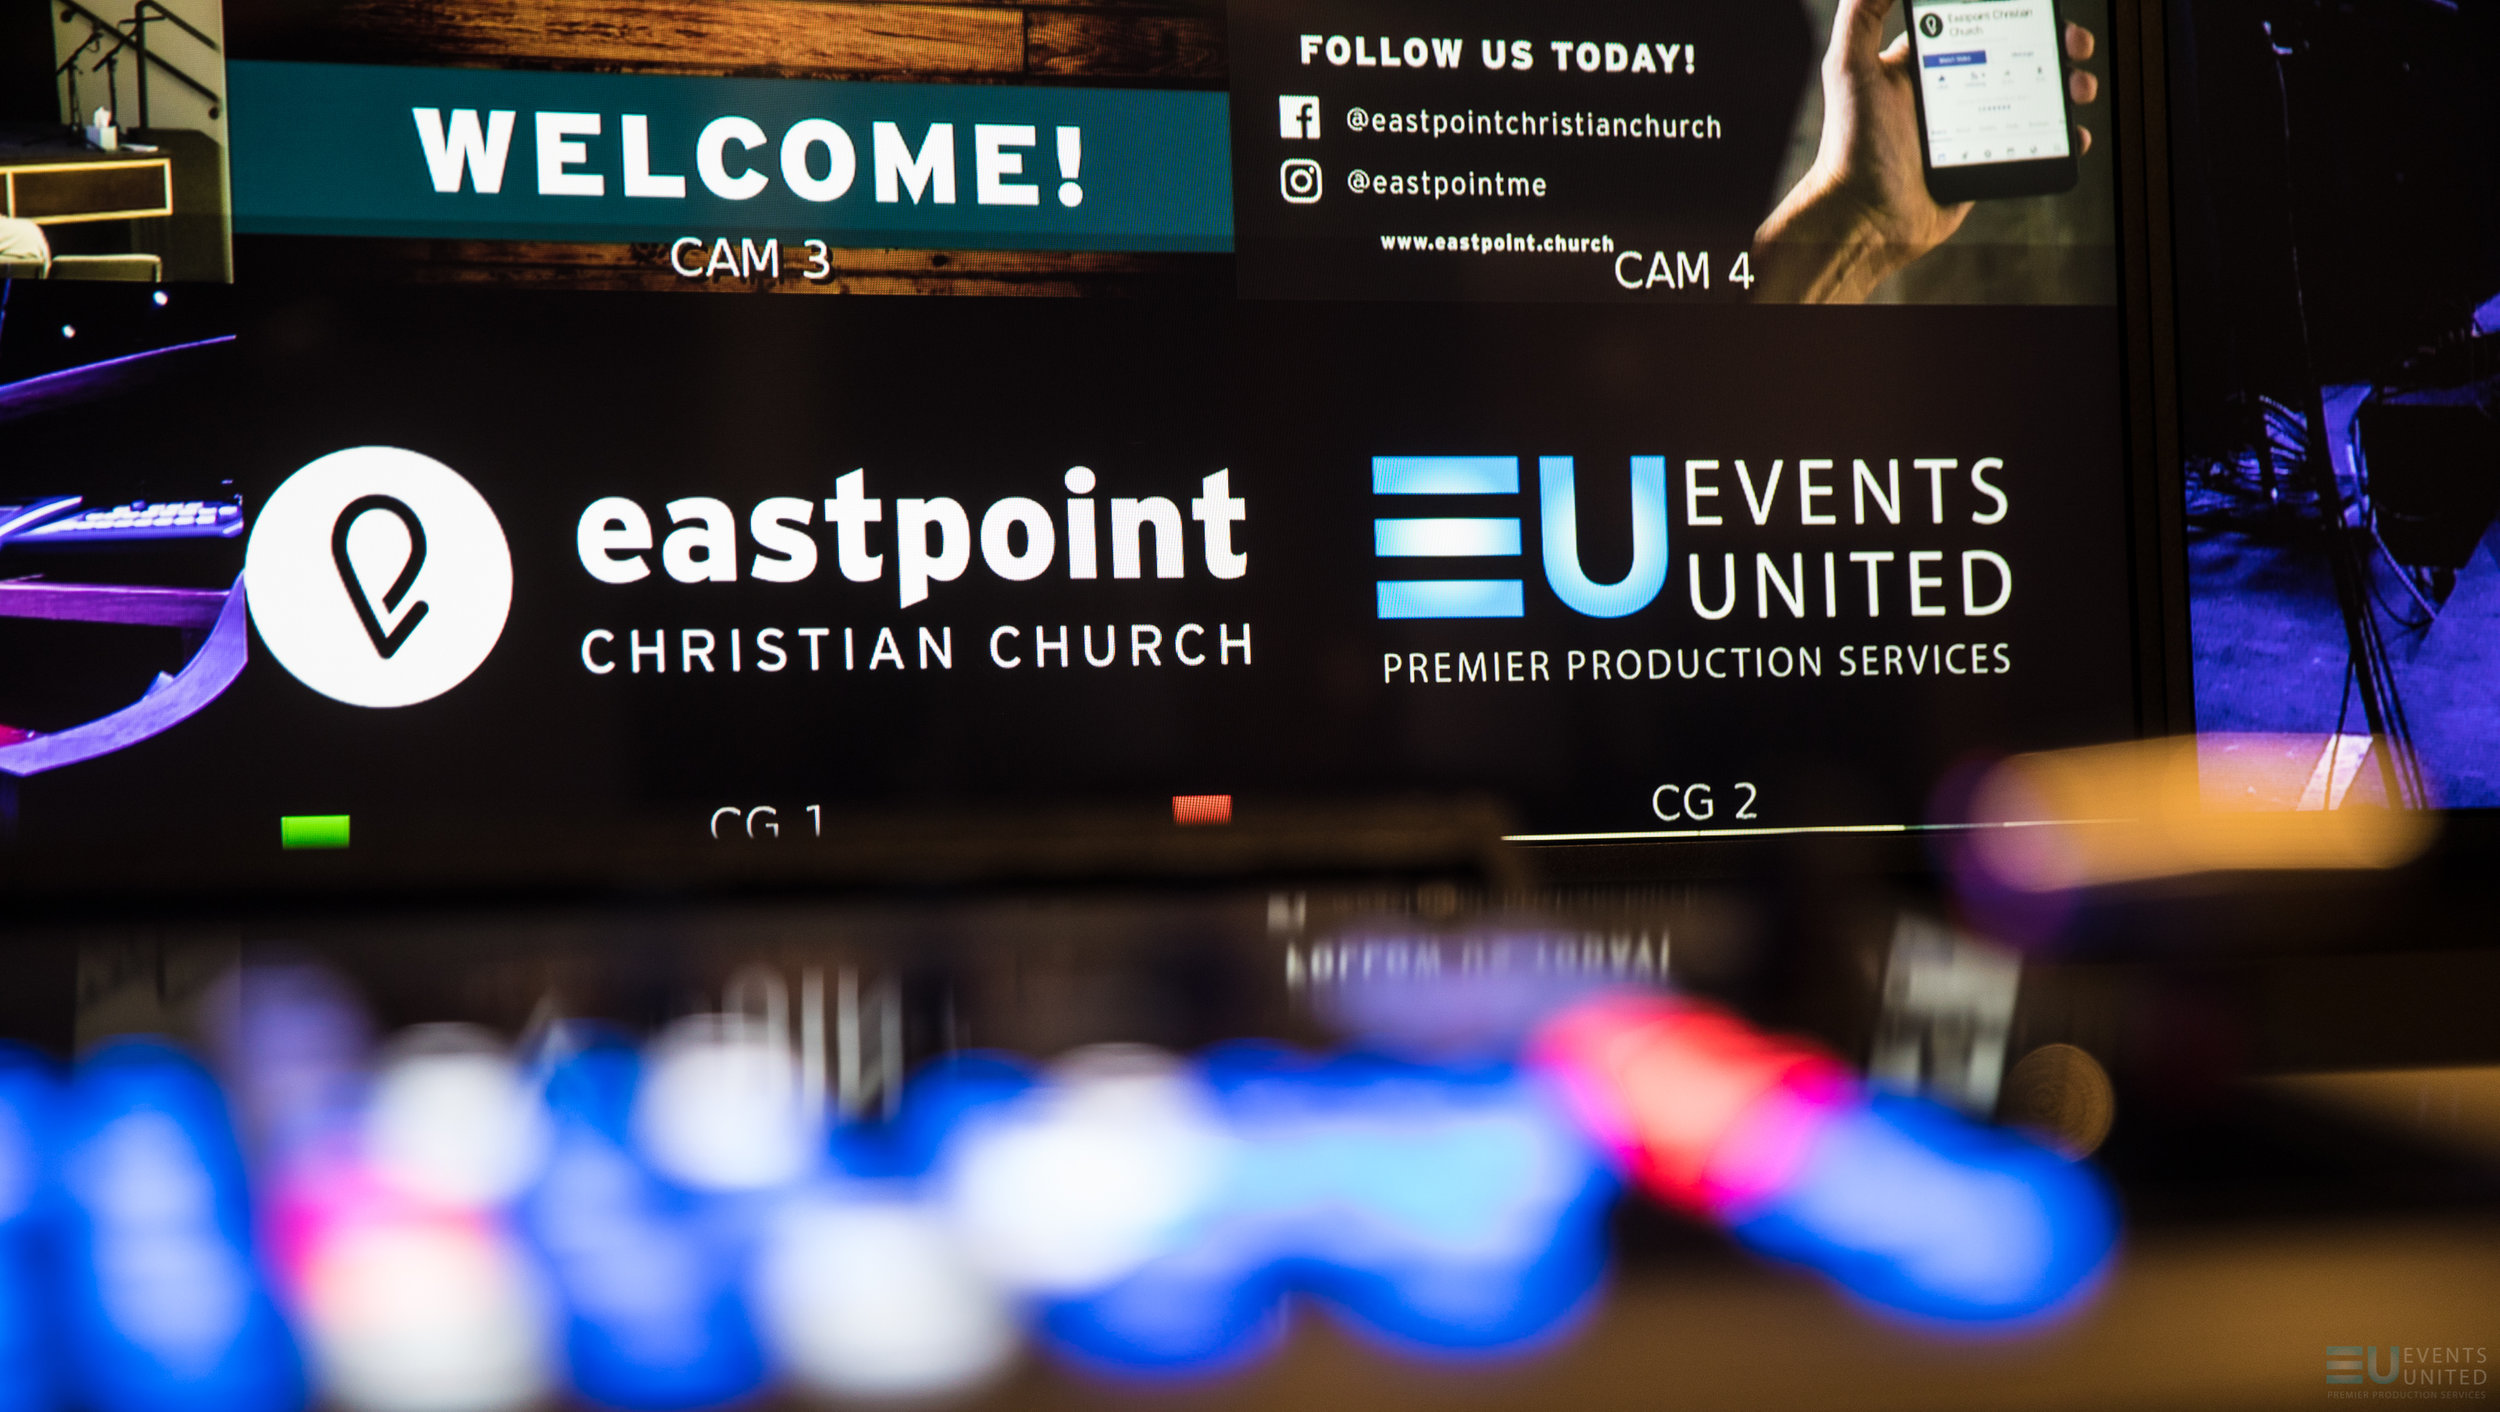 PHOTO ABOVE: EVENTS UNITED DESIGNED AND INSTALLED THE AVL SYSTEM AT EASTPOINT CHRISTIAN CHURCH -ALL PHOTOS COURTESY OF EVENTS UNITED.